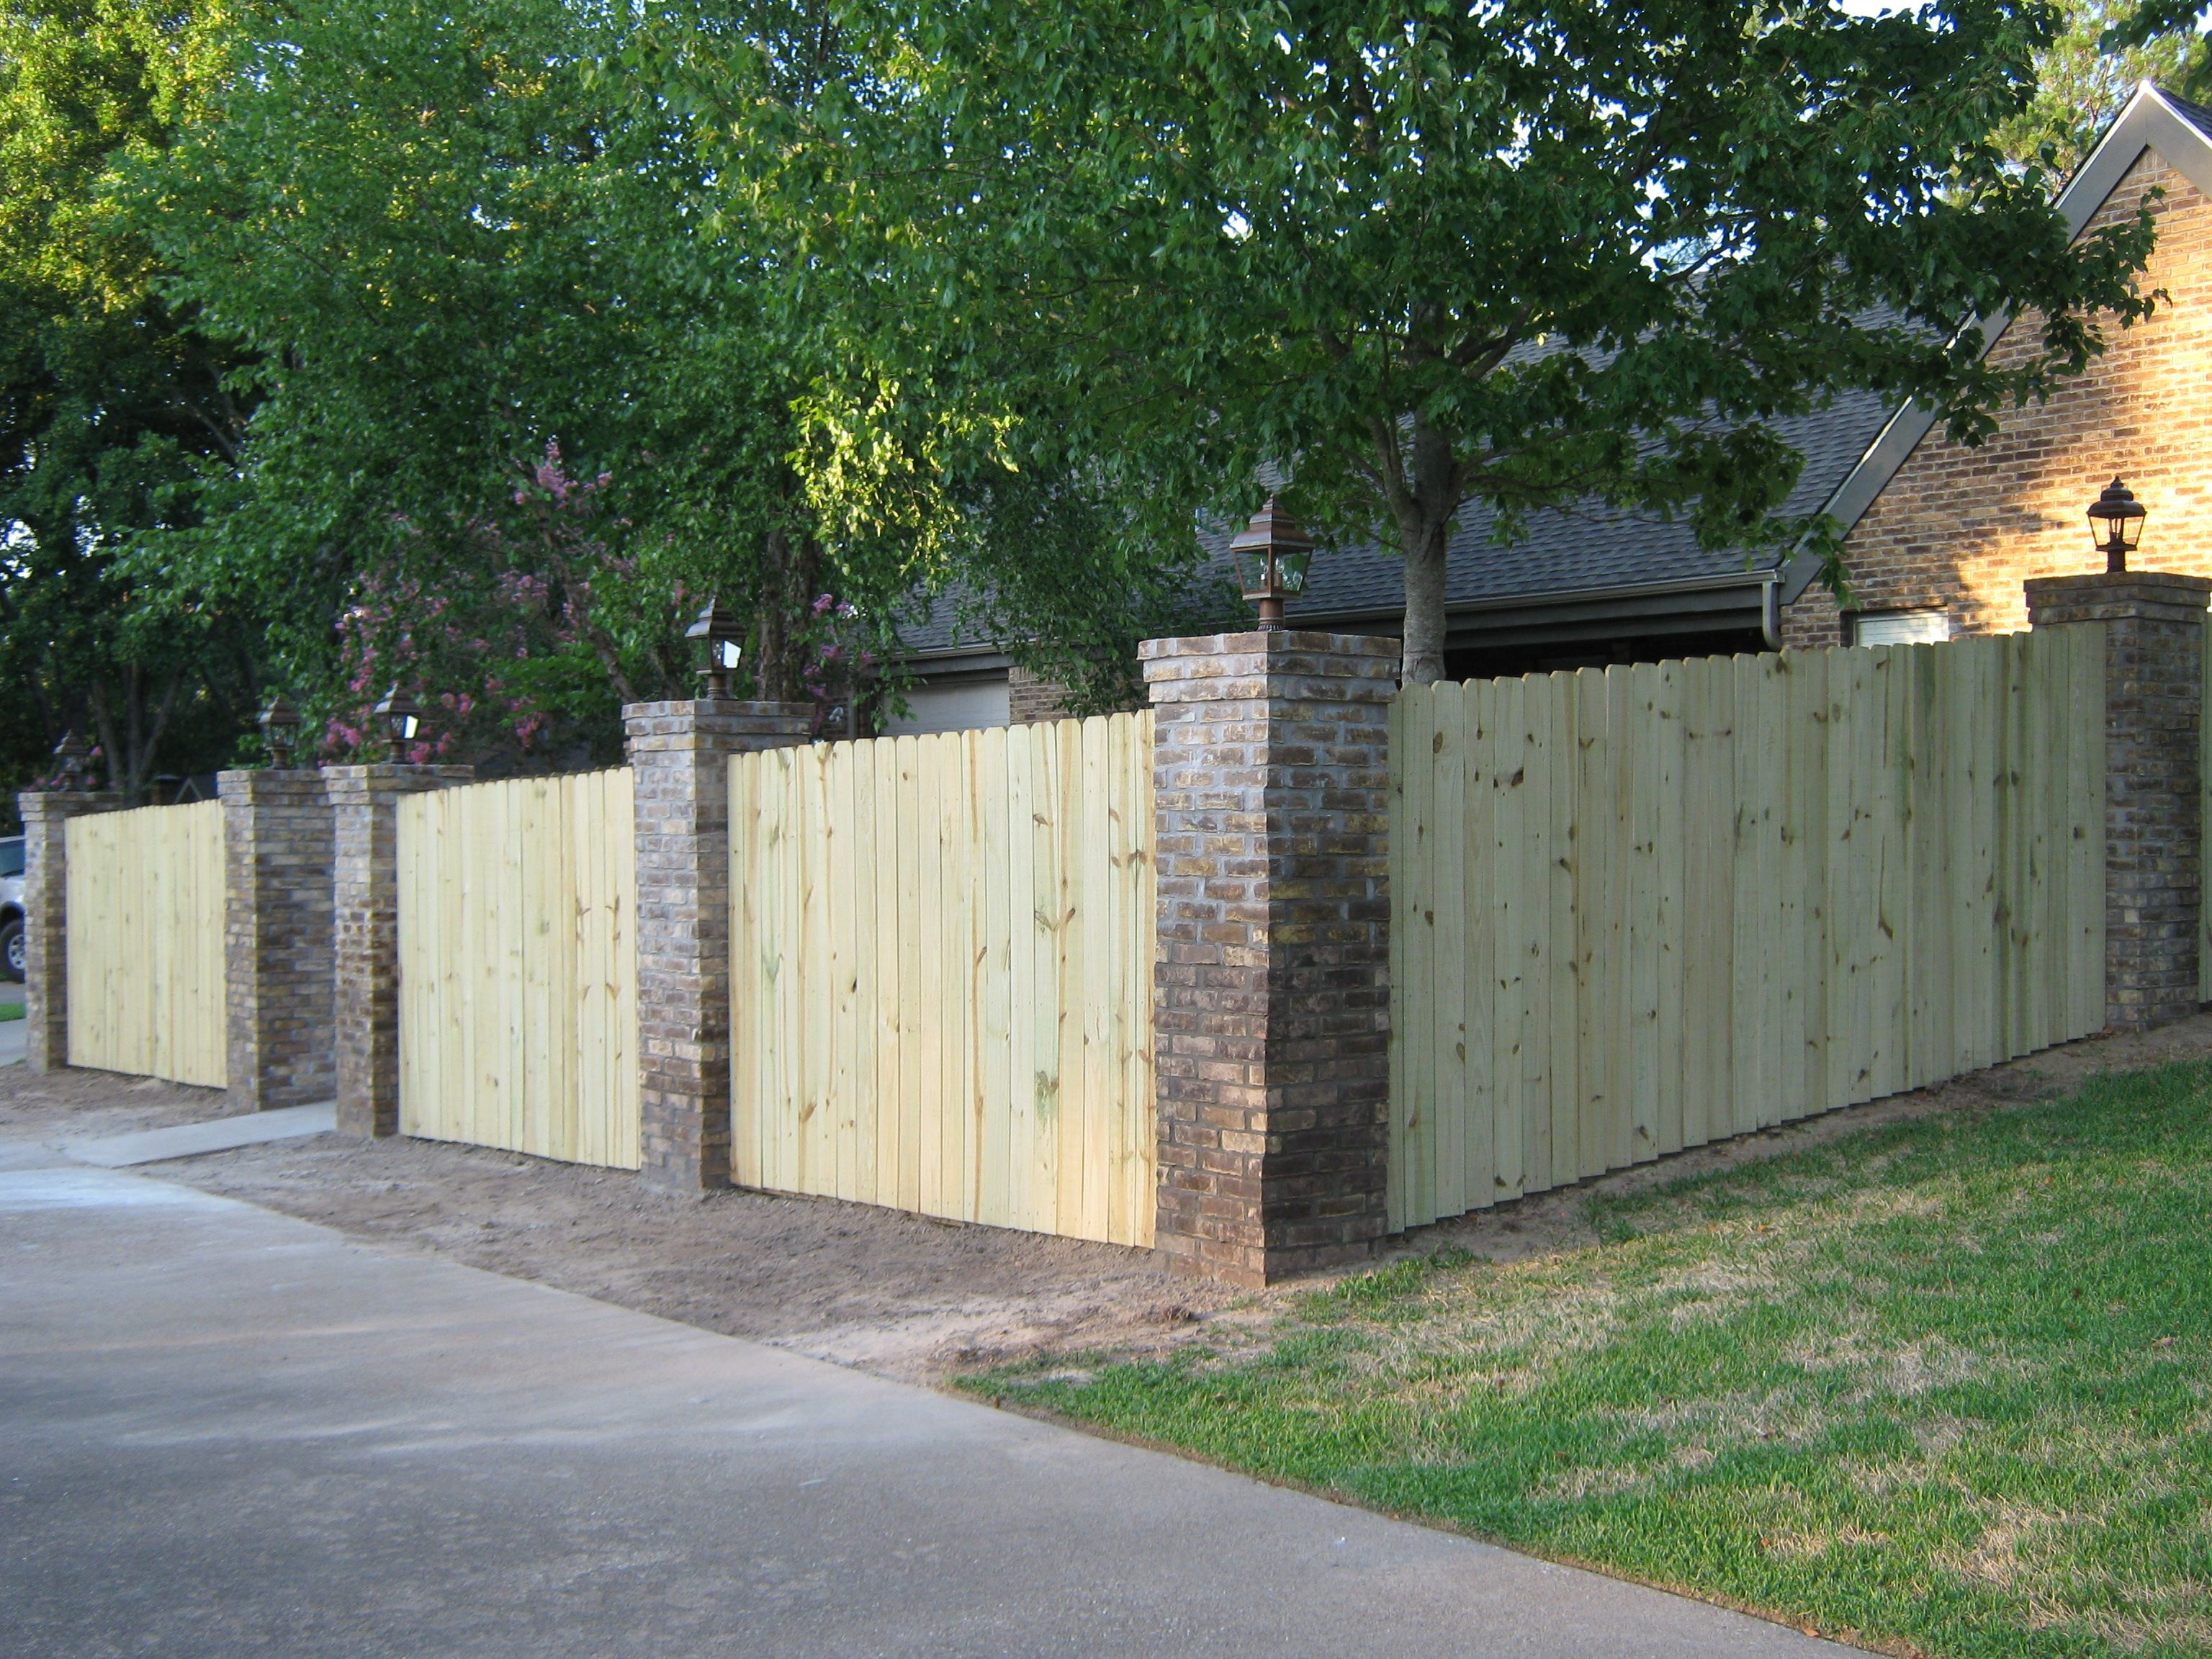 brick and wood fence | living outside | Pinterest | Wood ...